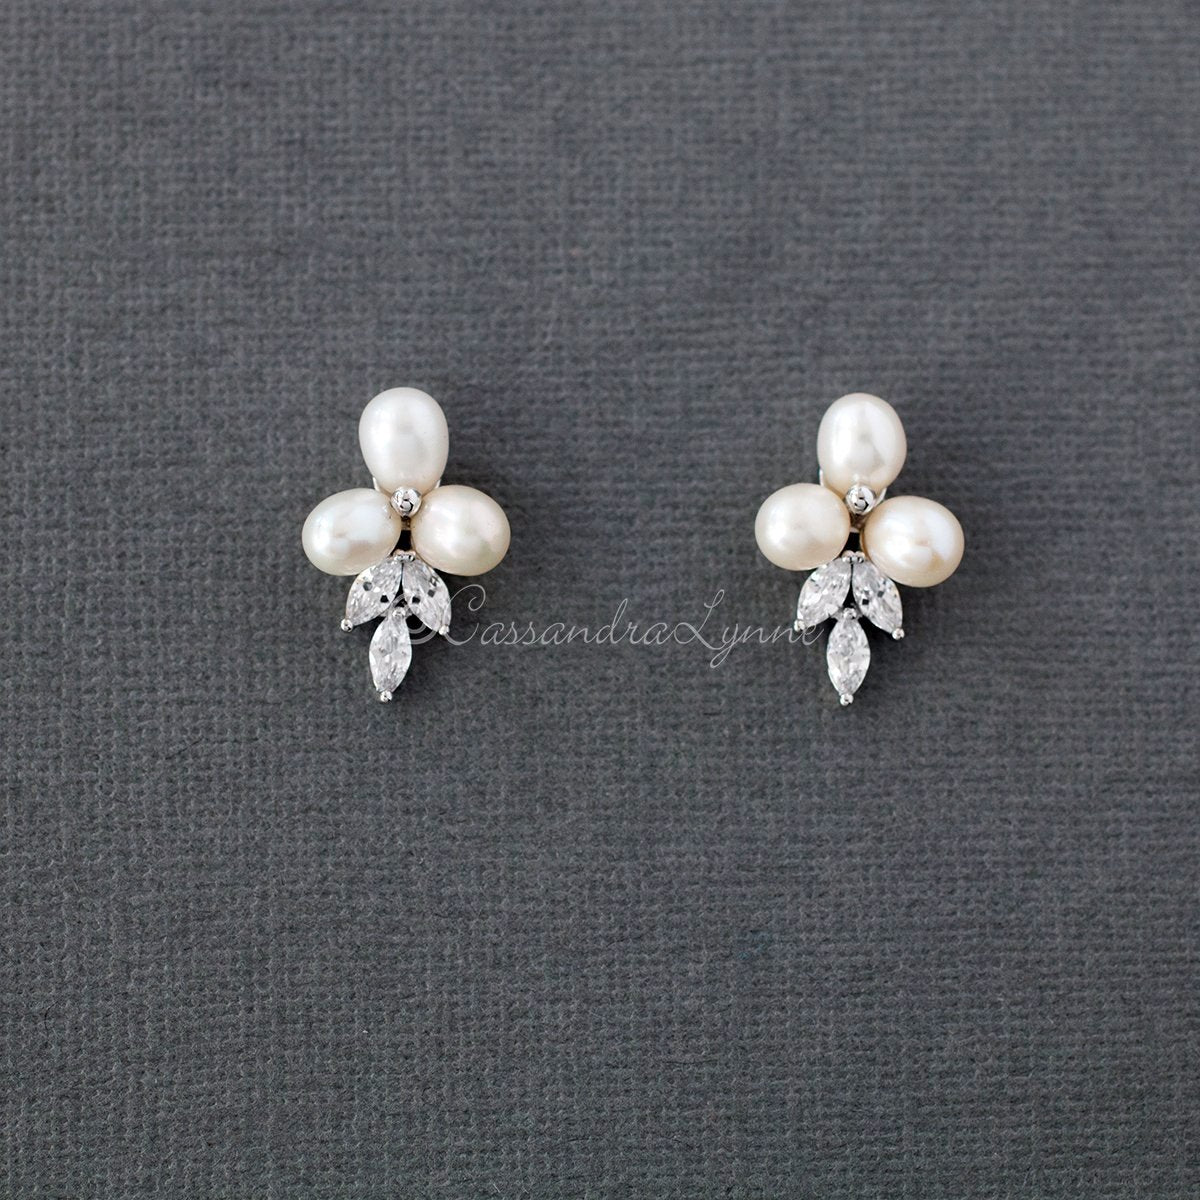 Pearl Flower Stud Earrings for the Bride